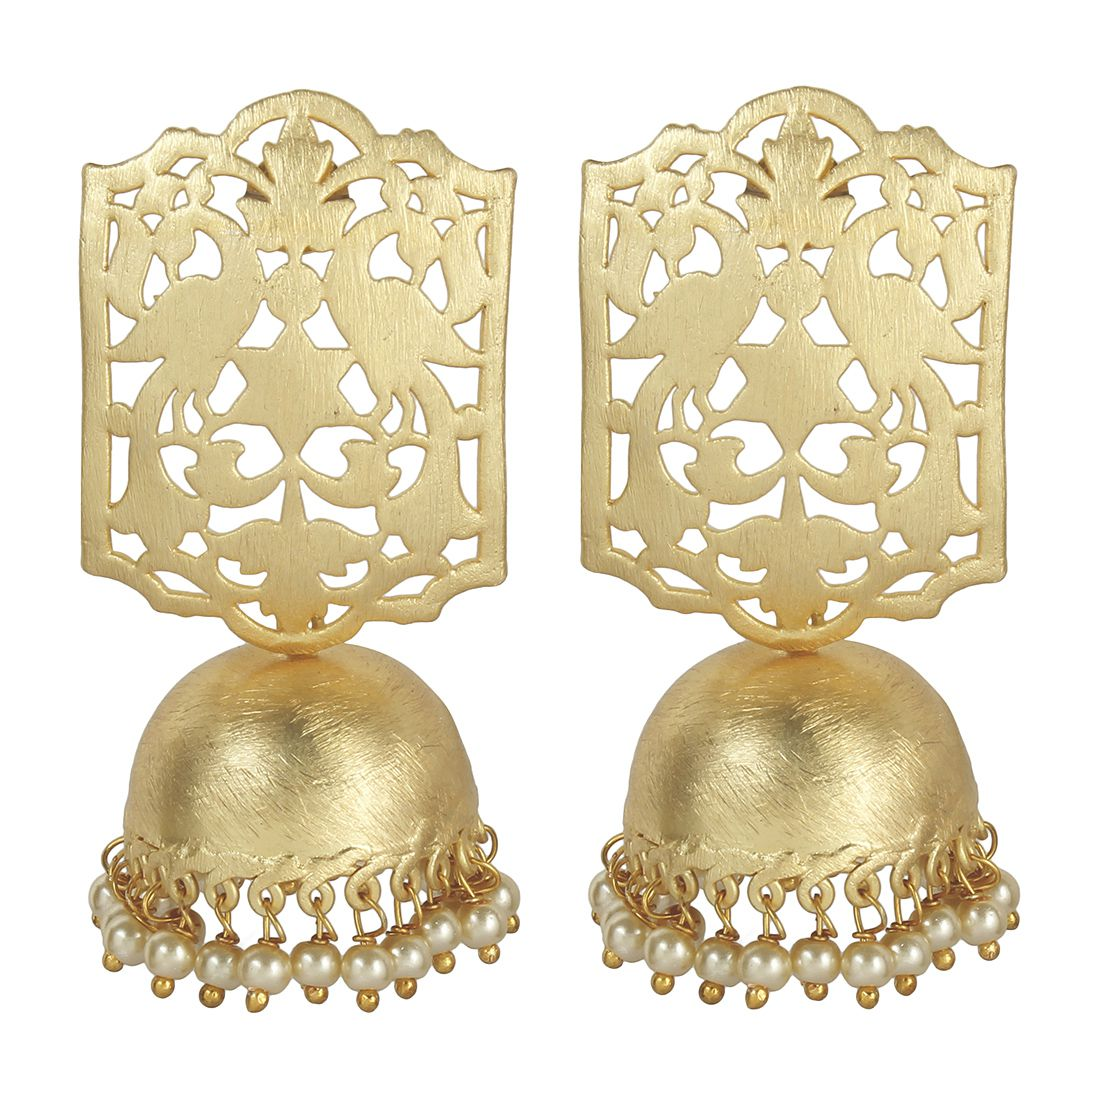 MUCH MORE Peecock Shape Gold Tone Boutique Colloction Fashion Earrings for Women's